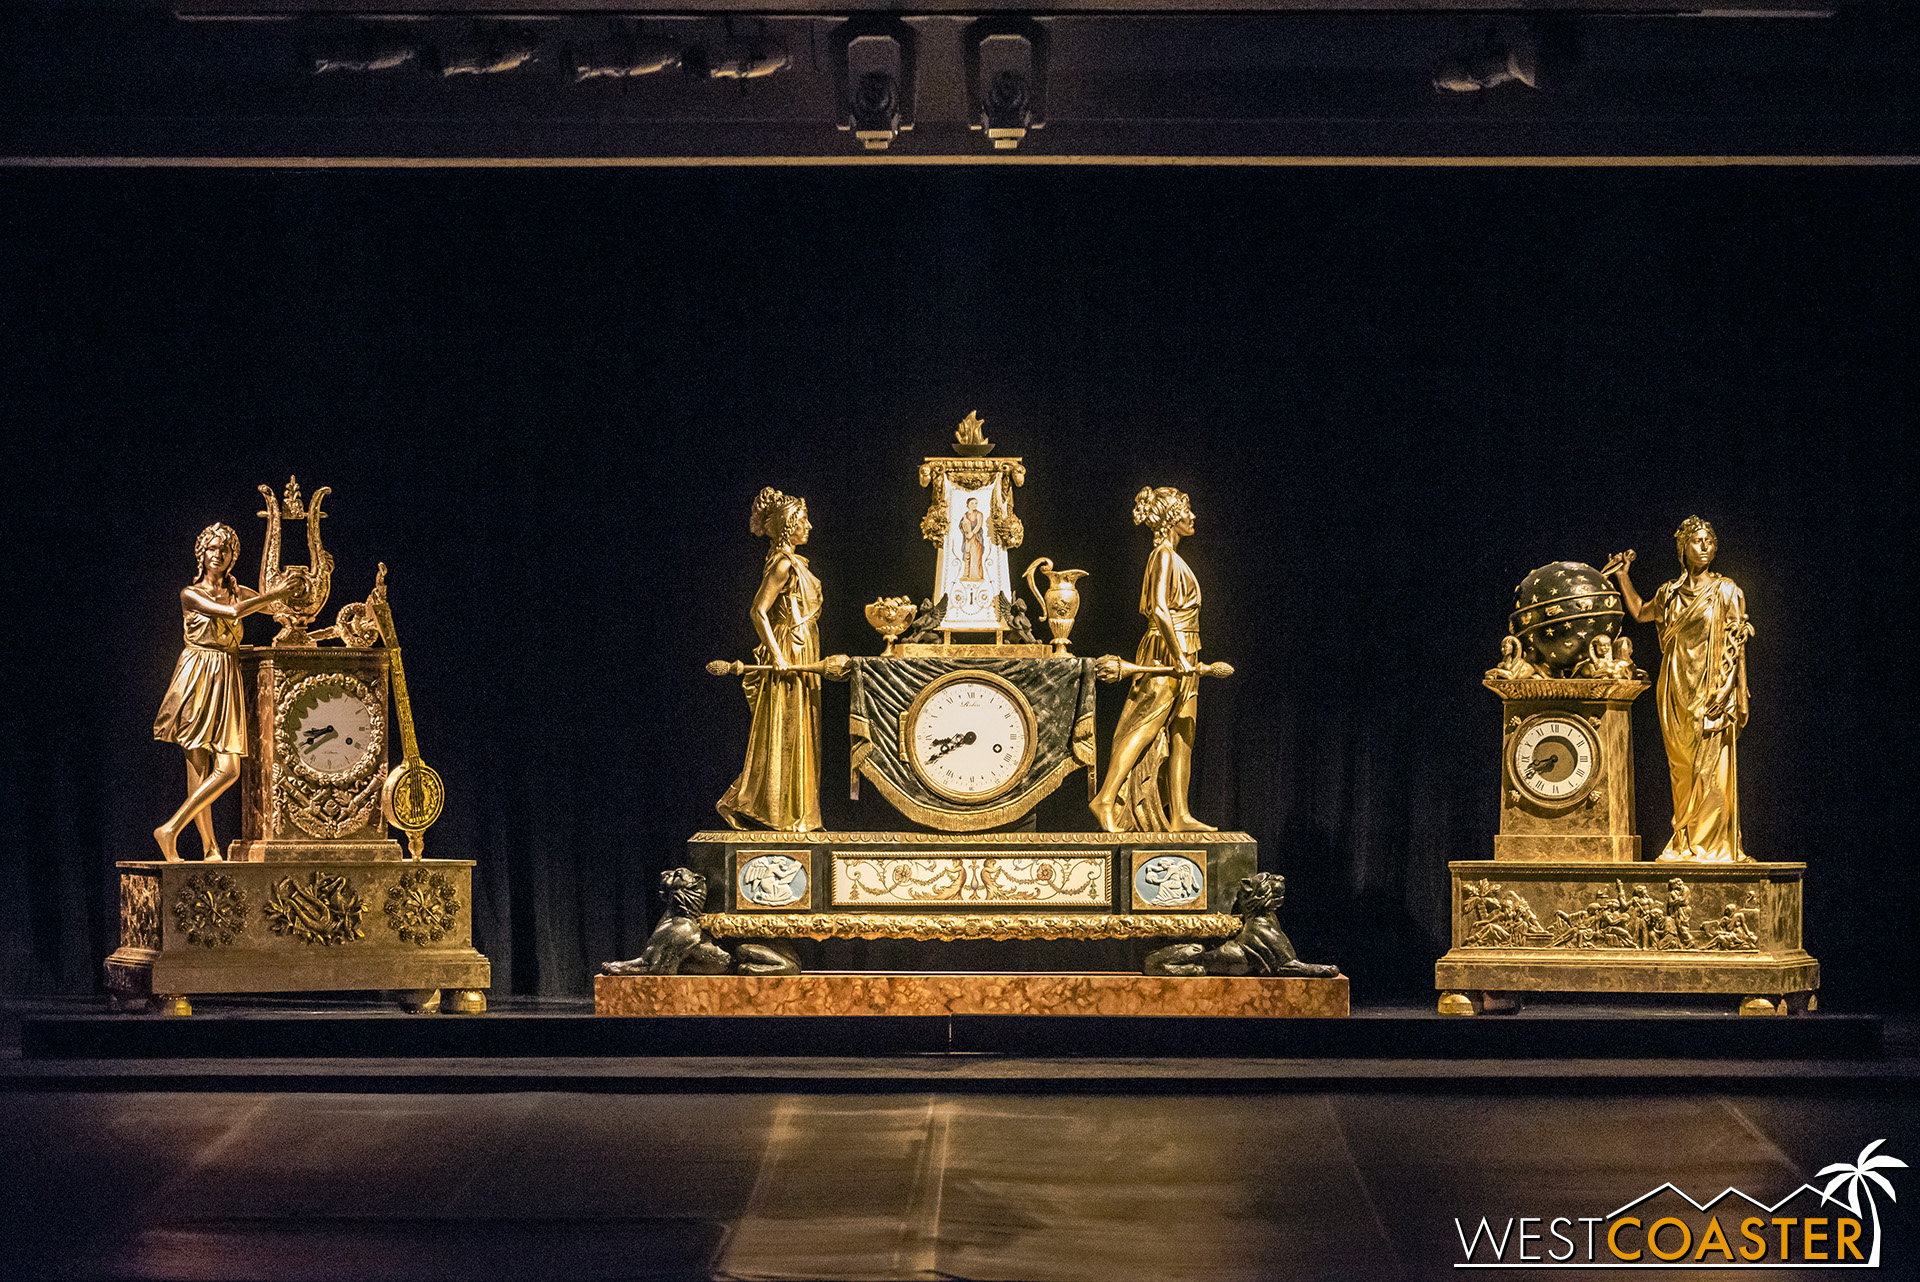 Finally, a collection of French Empire clocks.